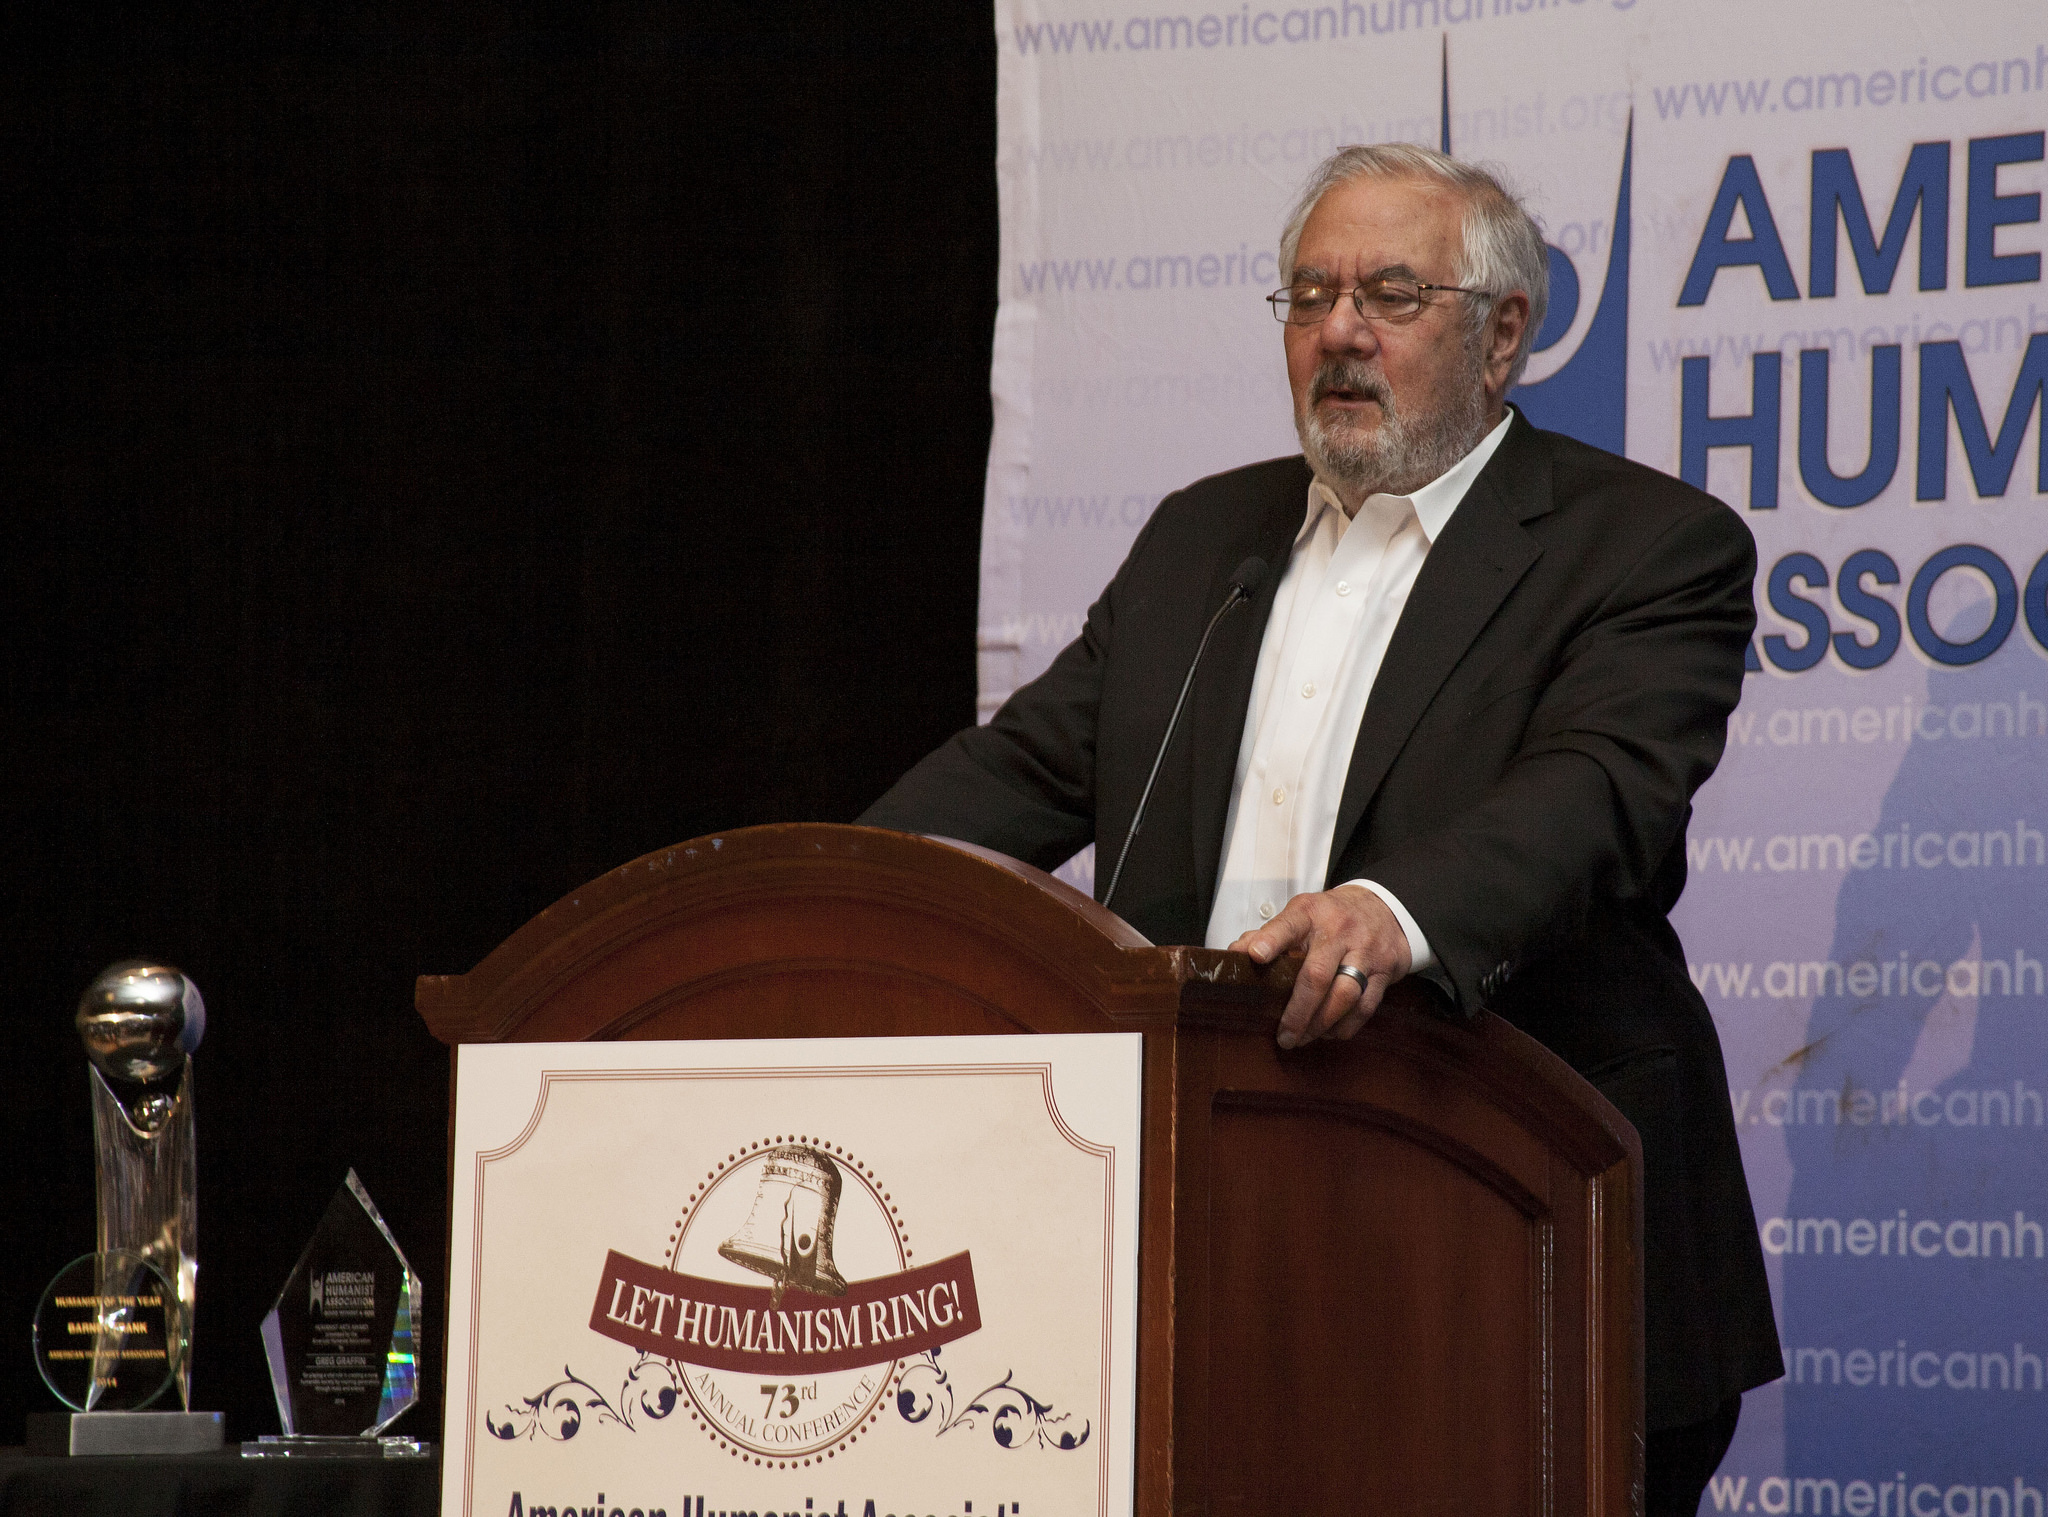 2014 Humanist of the Year, Barney Frank